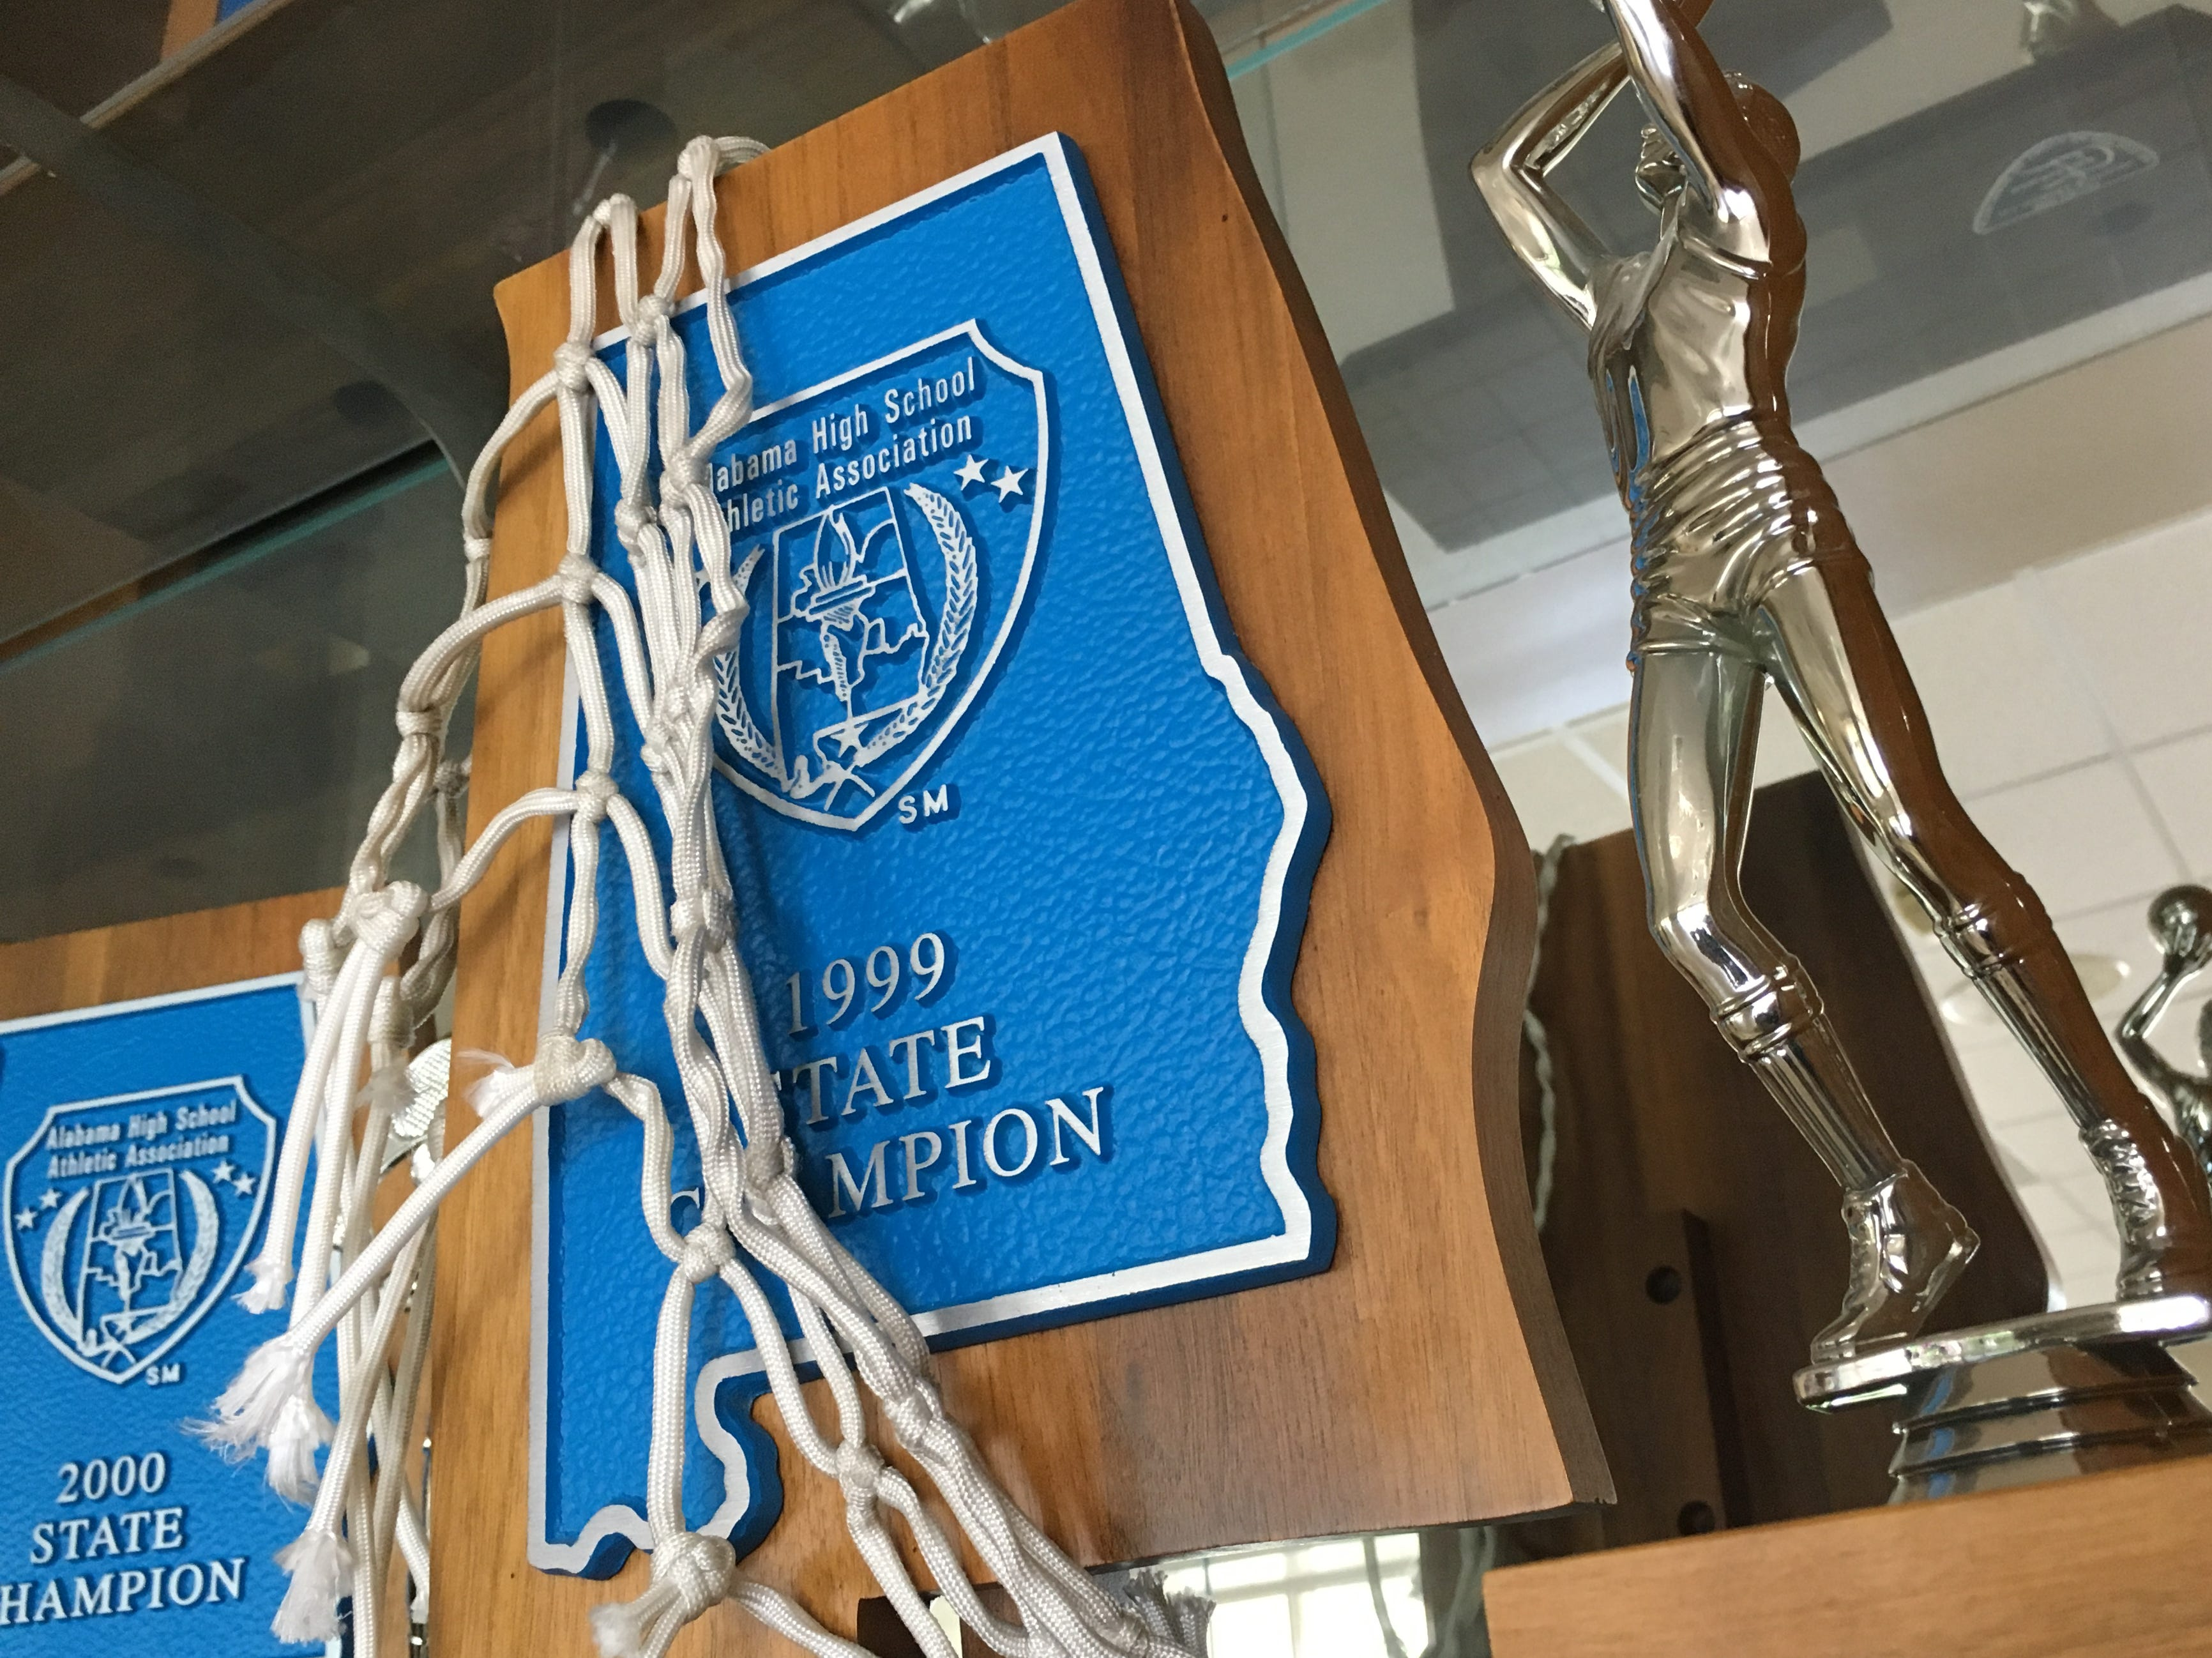 Trinity's 1999 state basketball championship trophy.